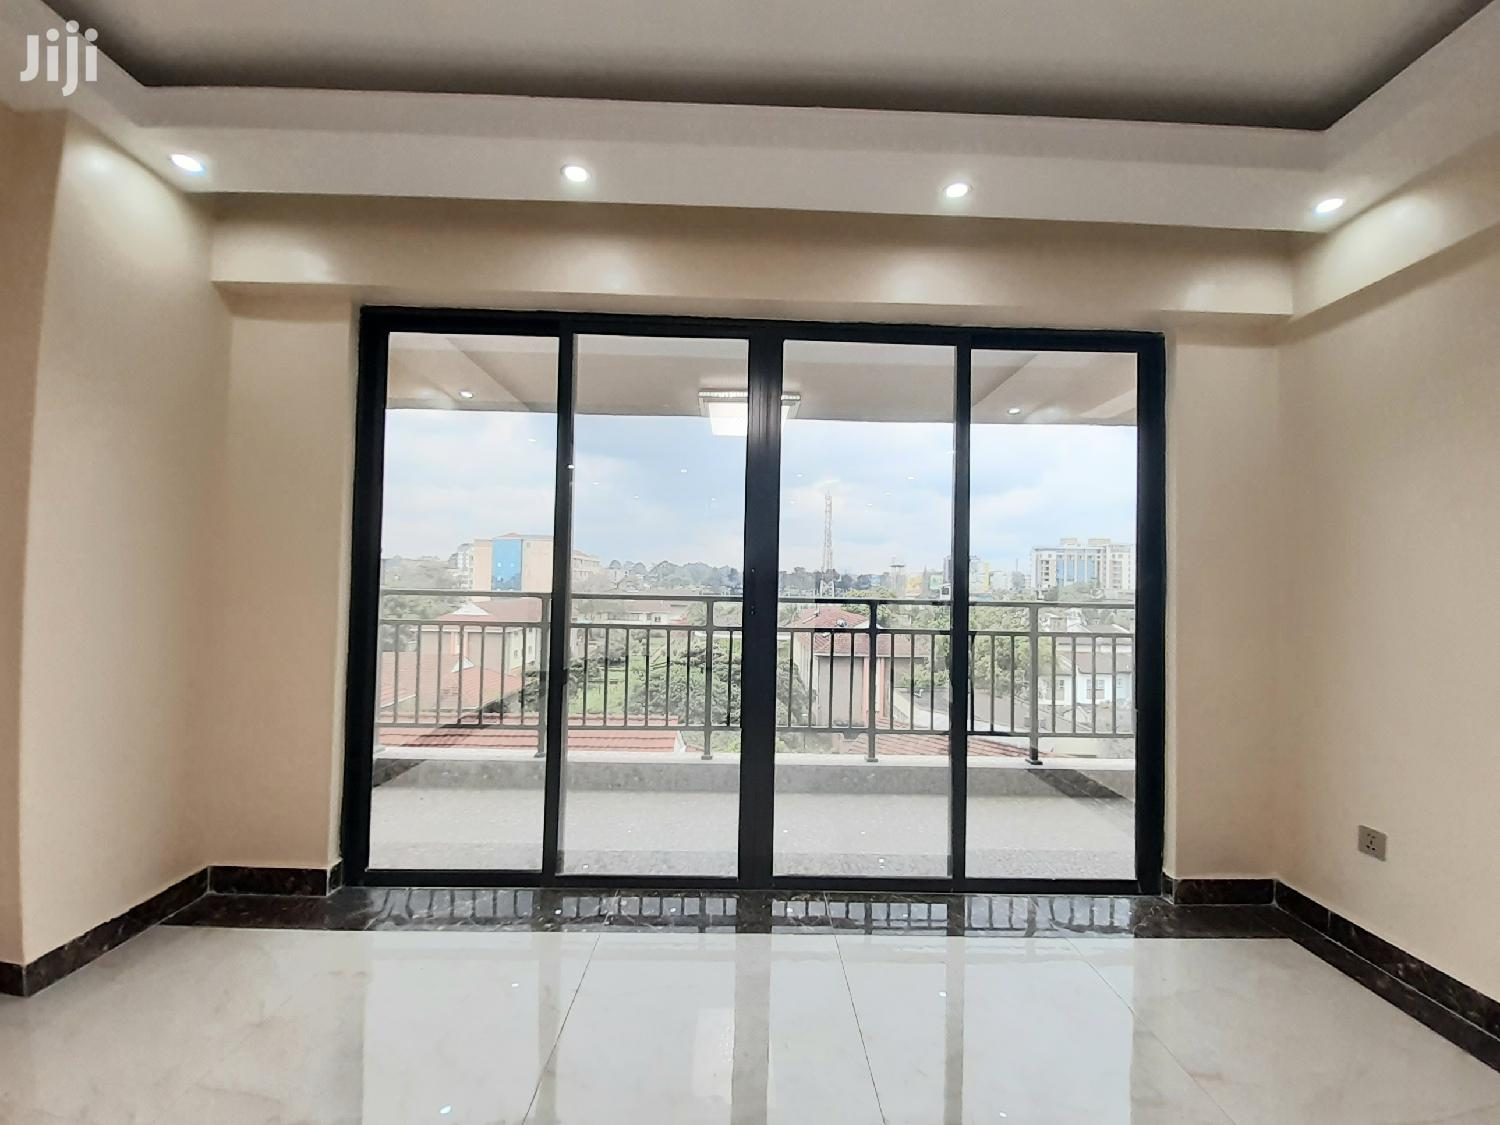 Classy 3 Bedroom Apartment In Kilimani.   Houses & Apartments For Sale for sale in Kilimani, Nairobi, Kenya